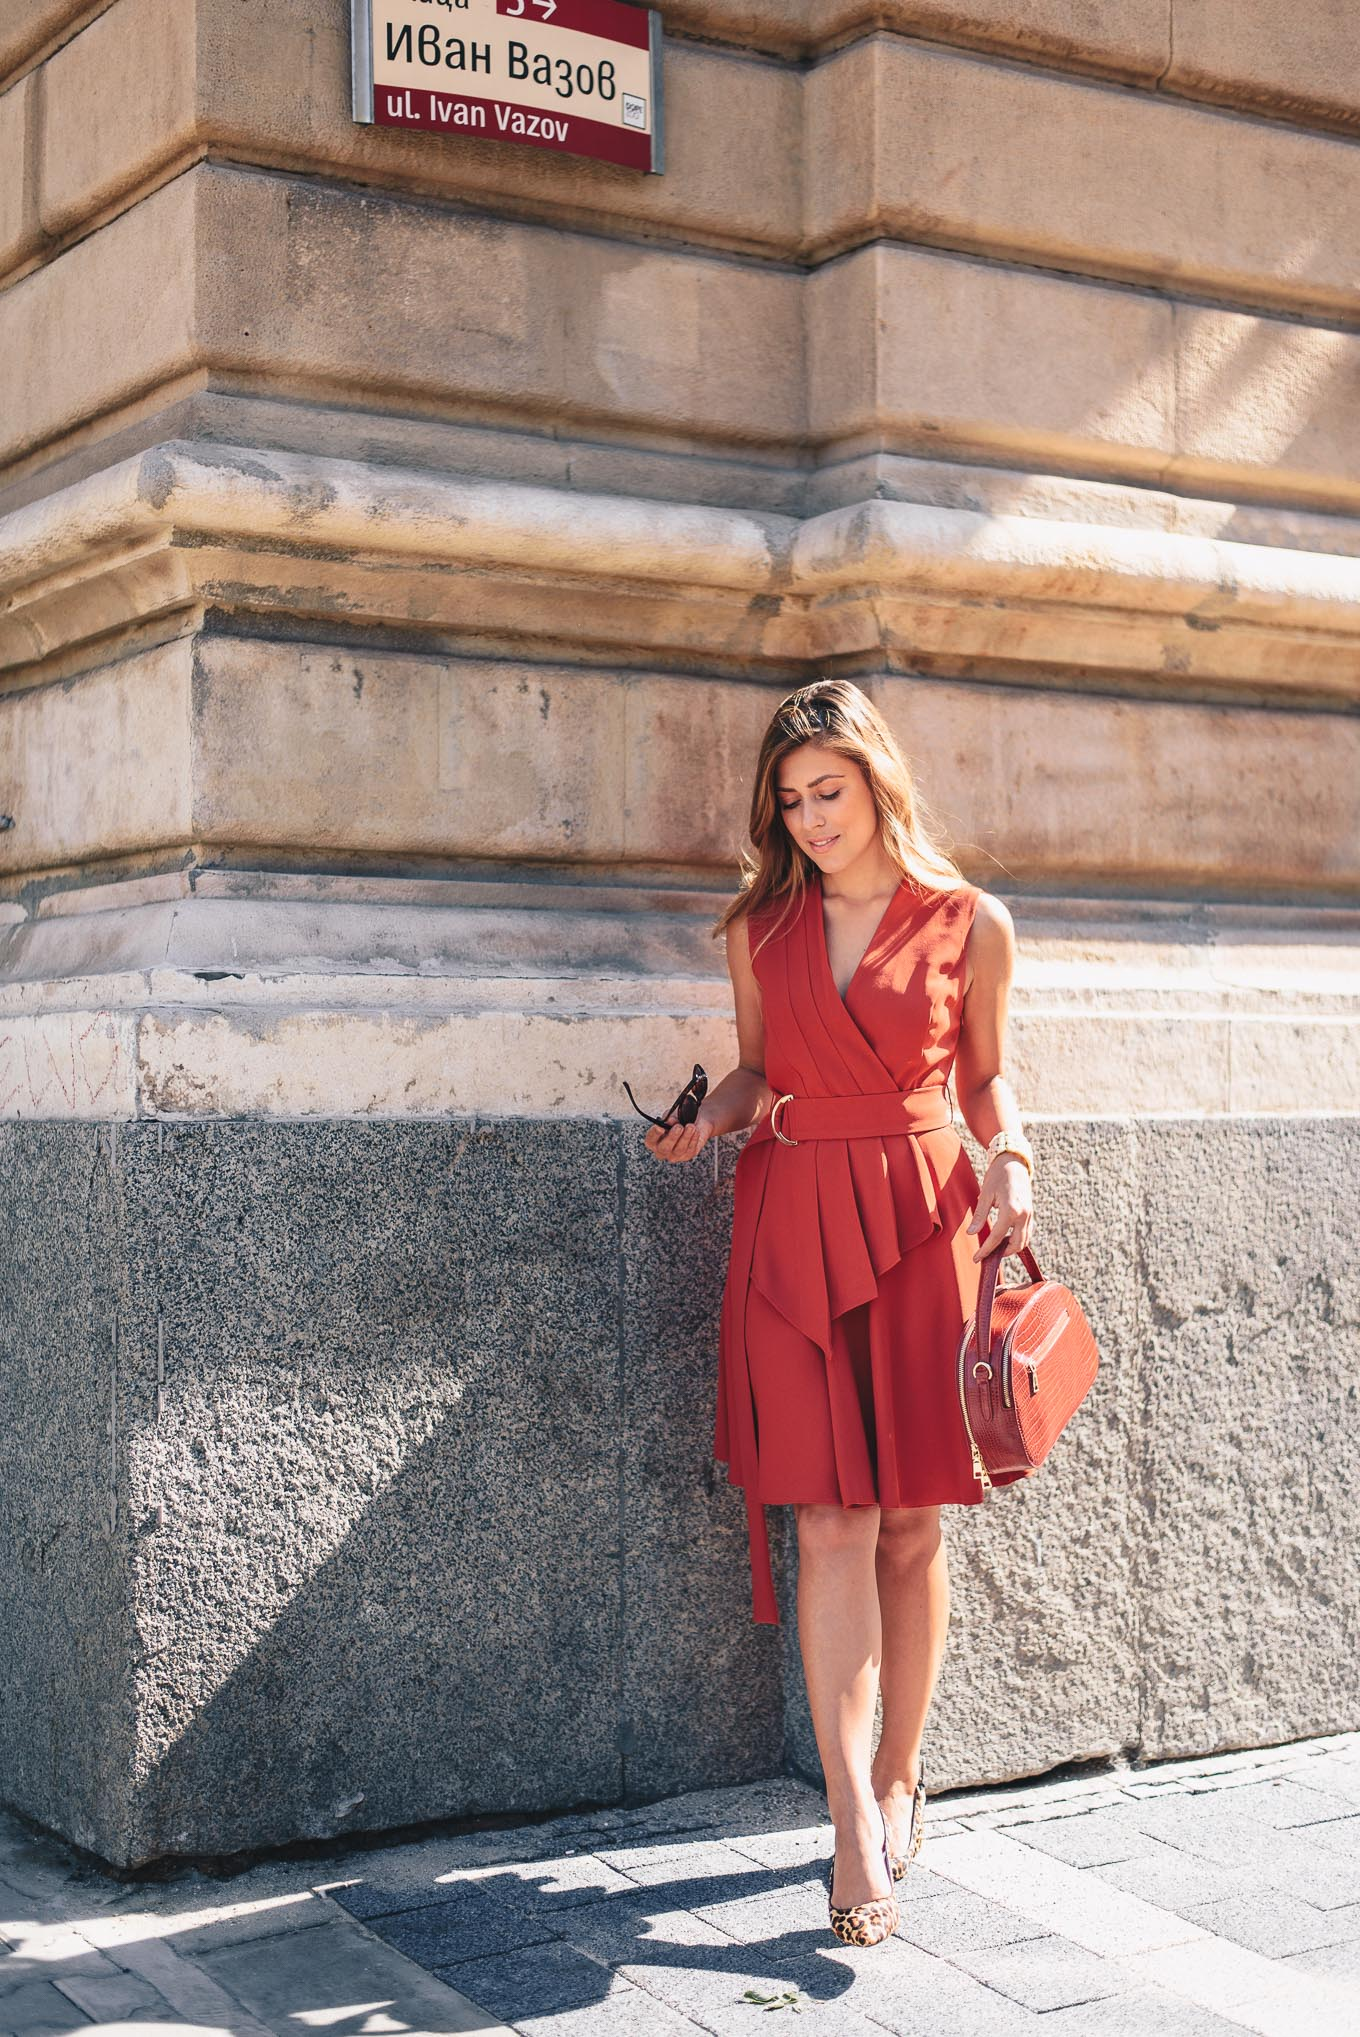 pop of red dress in the city